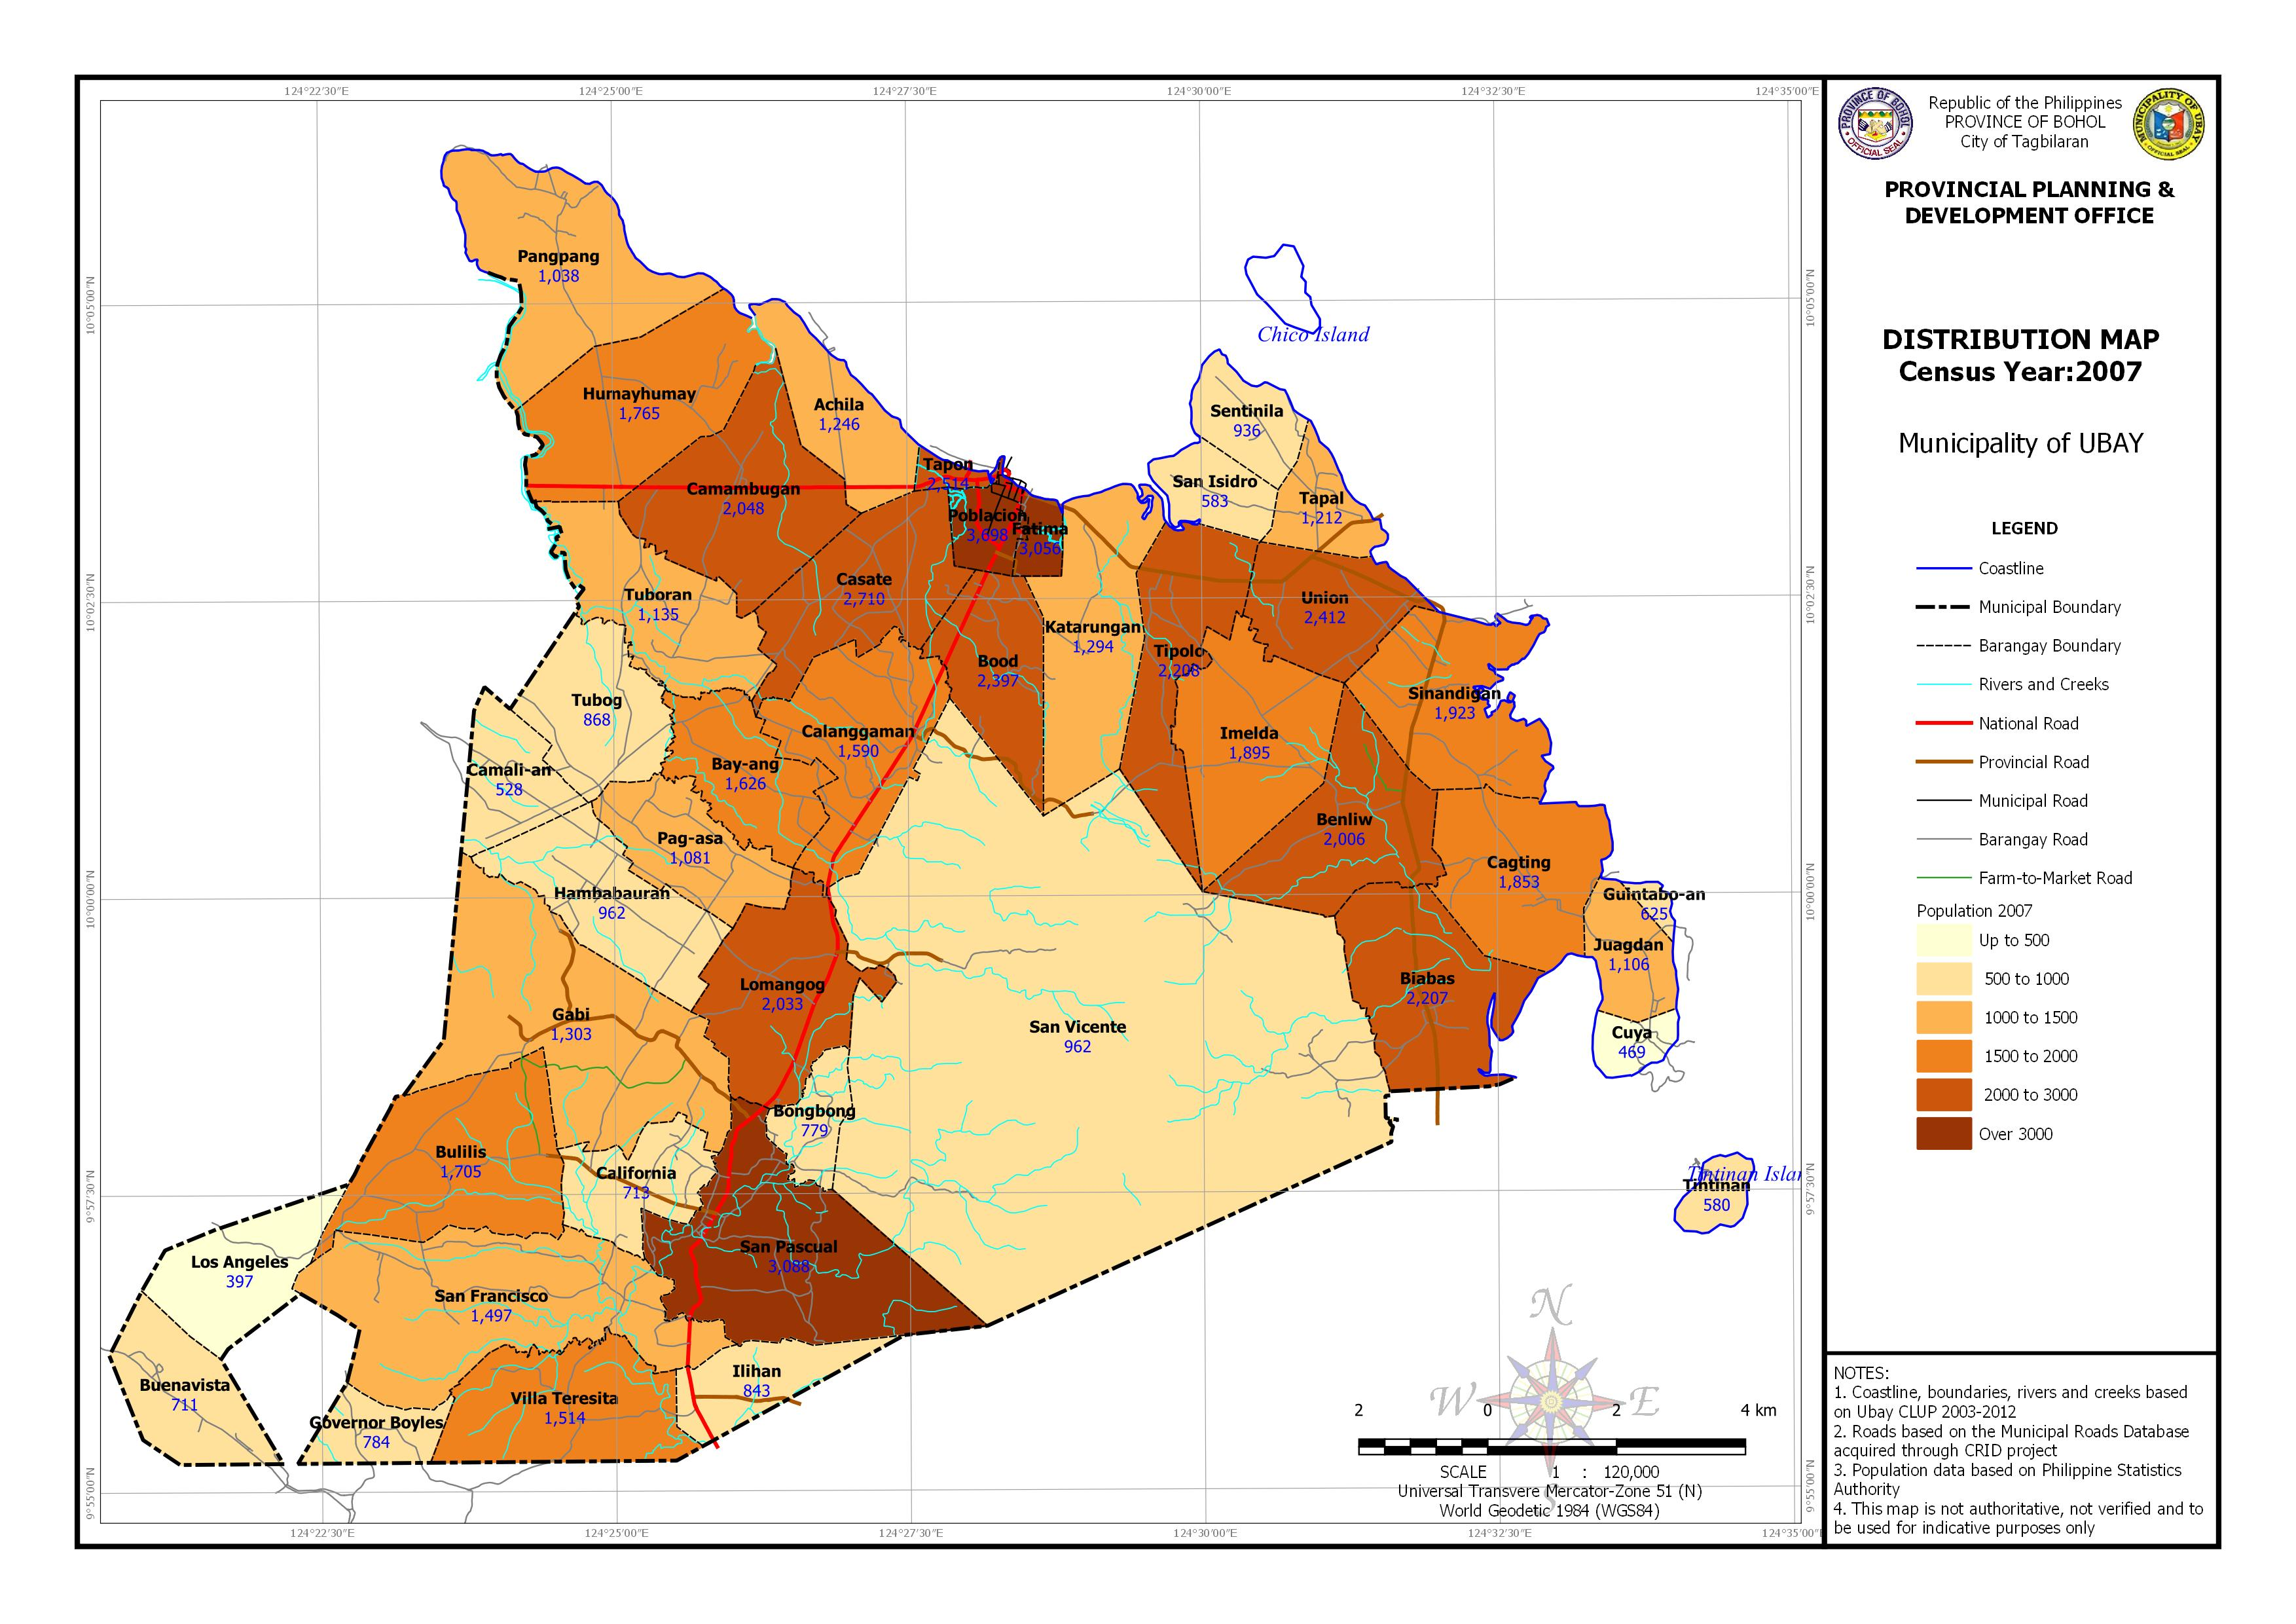 Population Distribution Census Year: 2007 Map